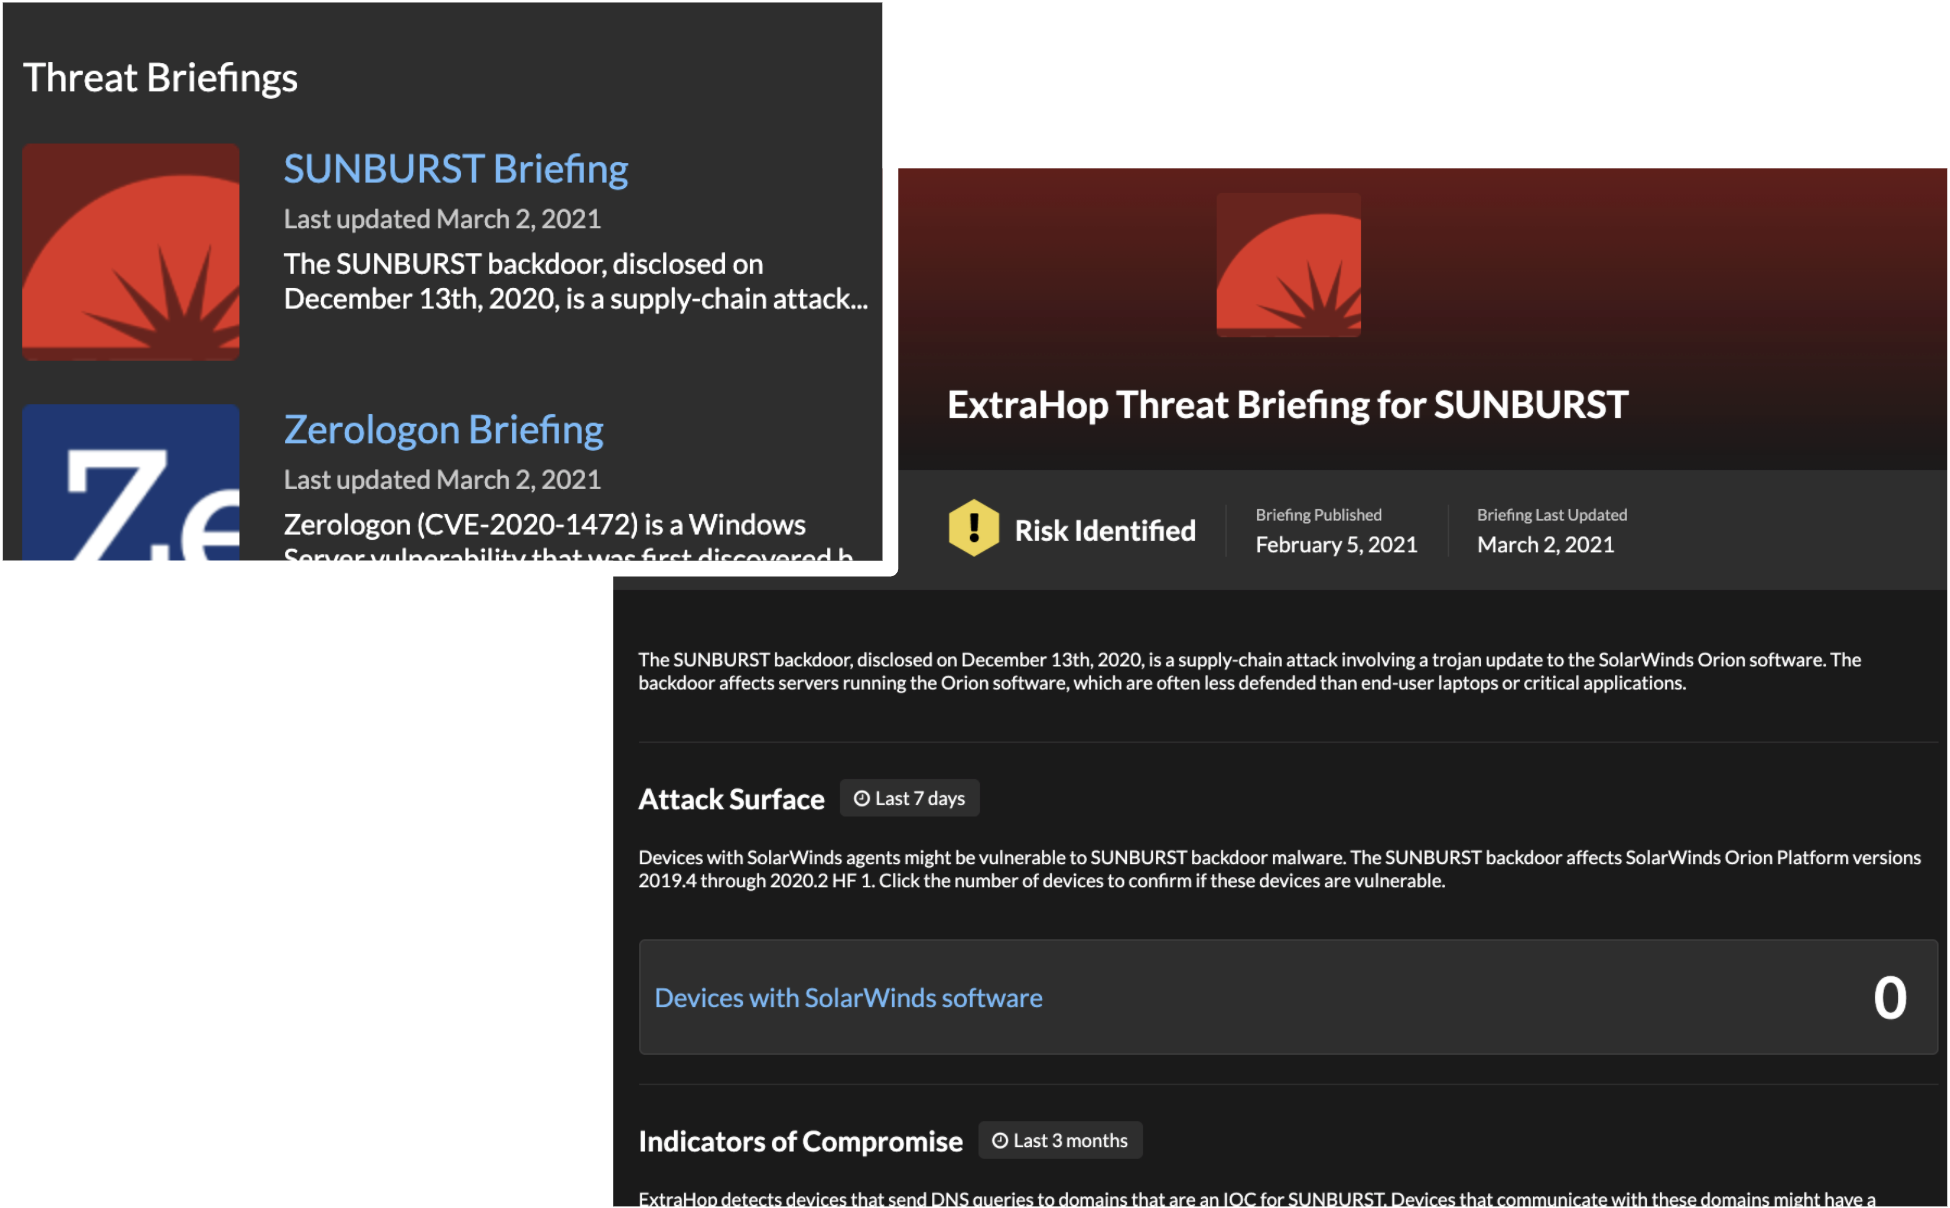 SUNBURST threat briefing